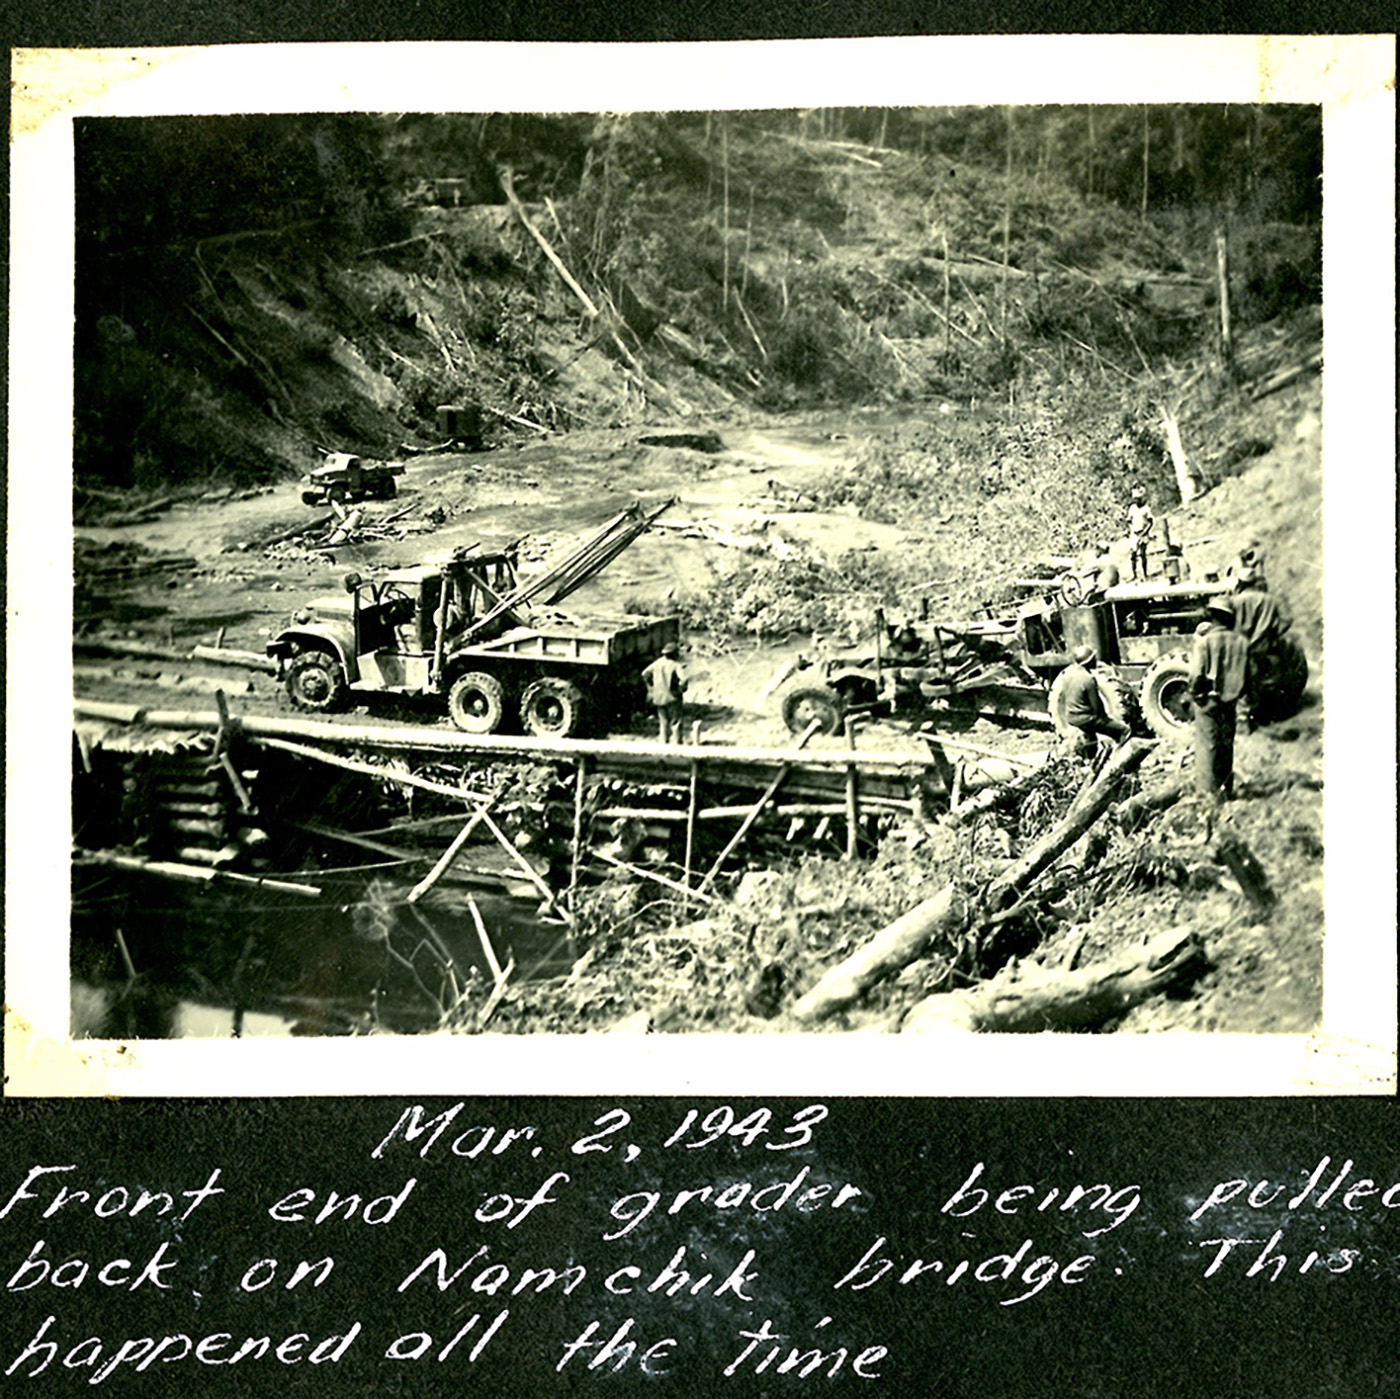 heavy equipment crossing a crude bridge